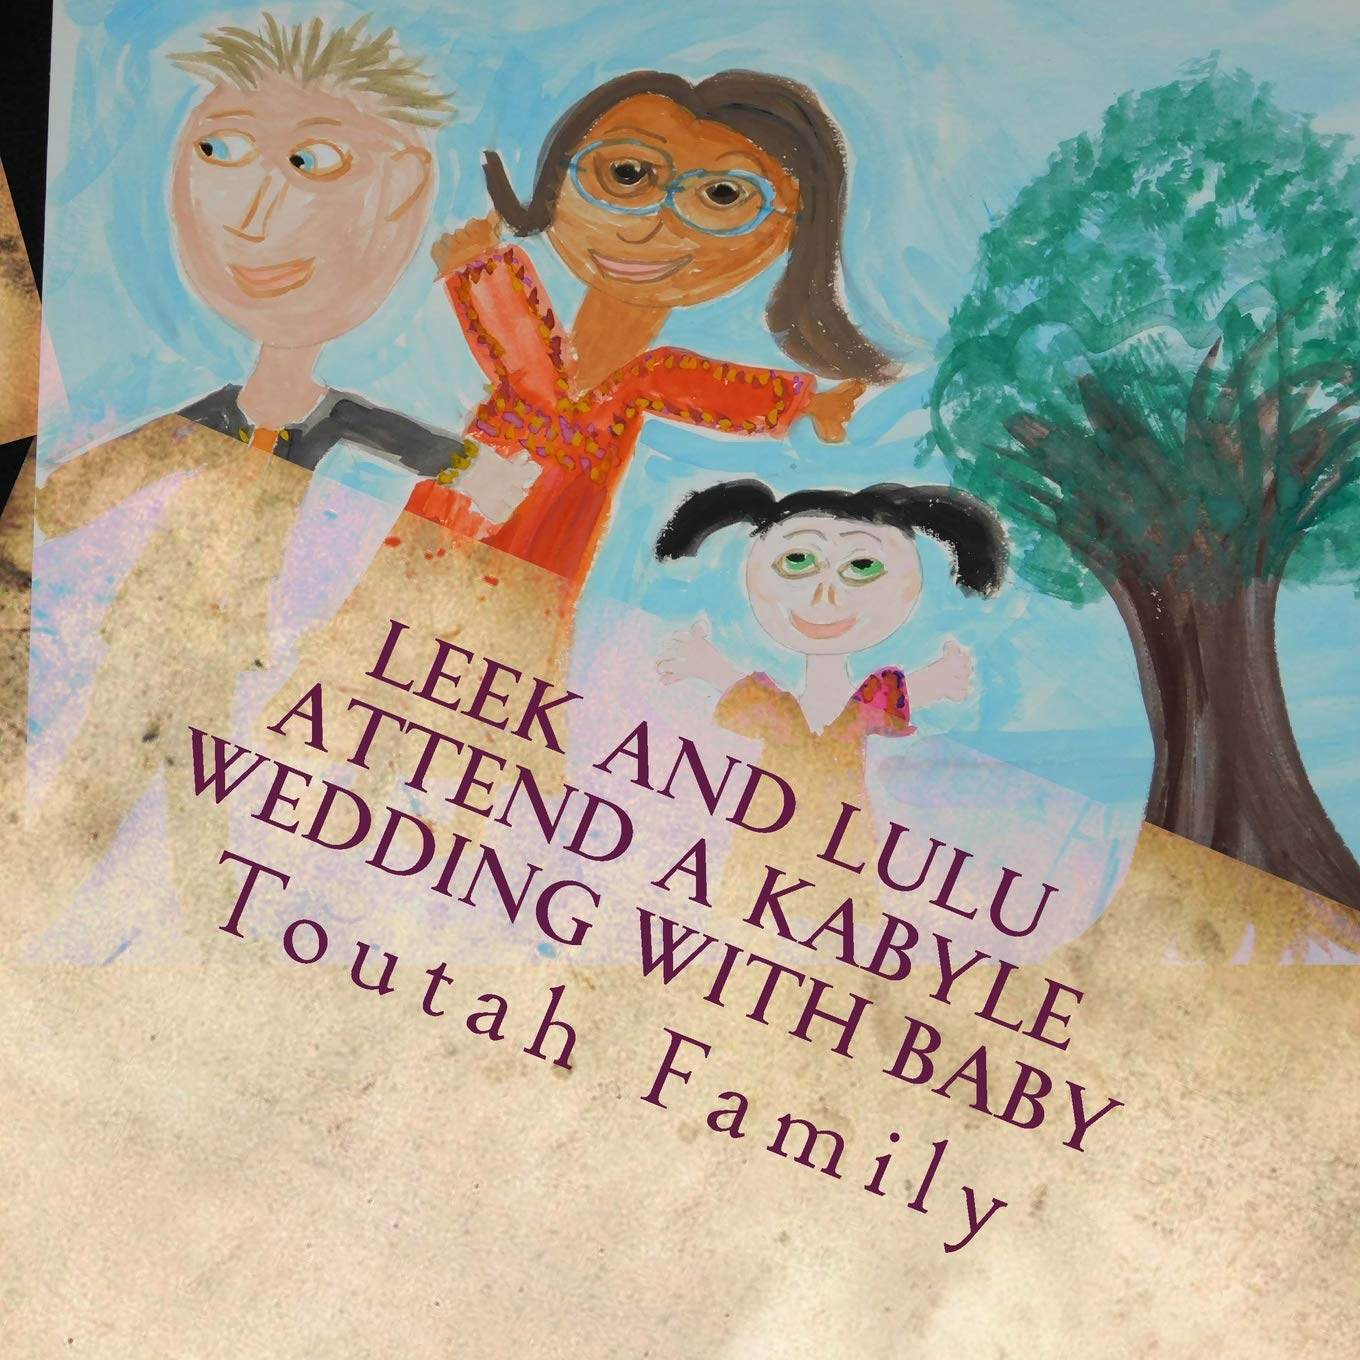 Read Online Leek and Lulu Attend a Kabyle Wedding with Baby pdf